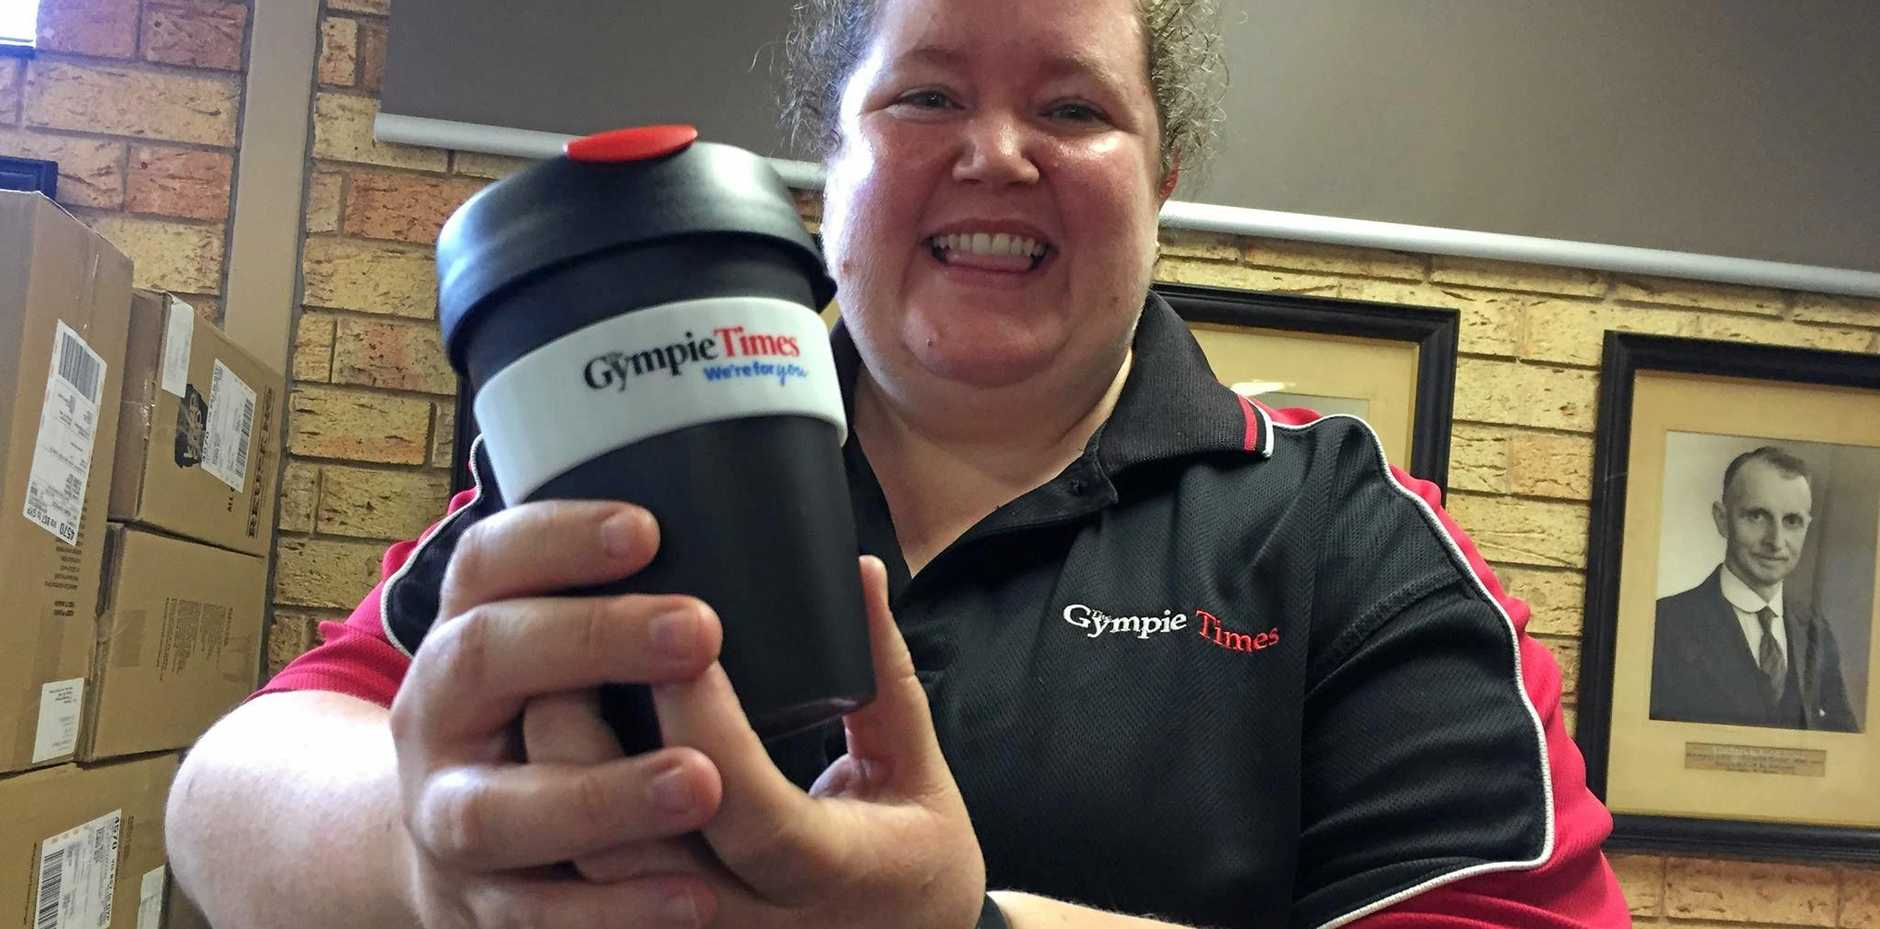 Renee King with The Gympie Times keep cup